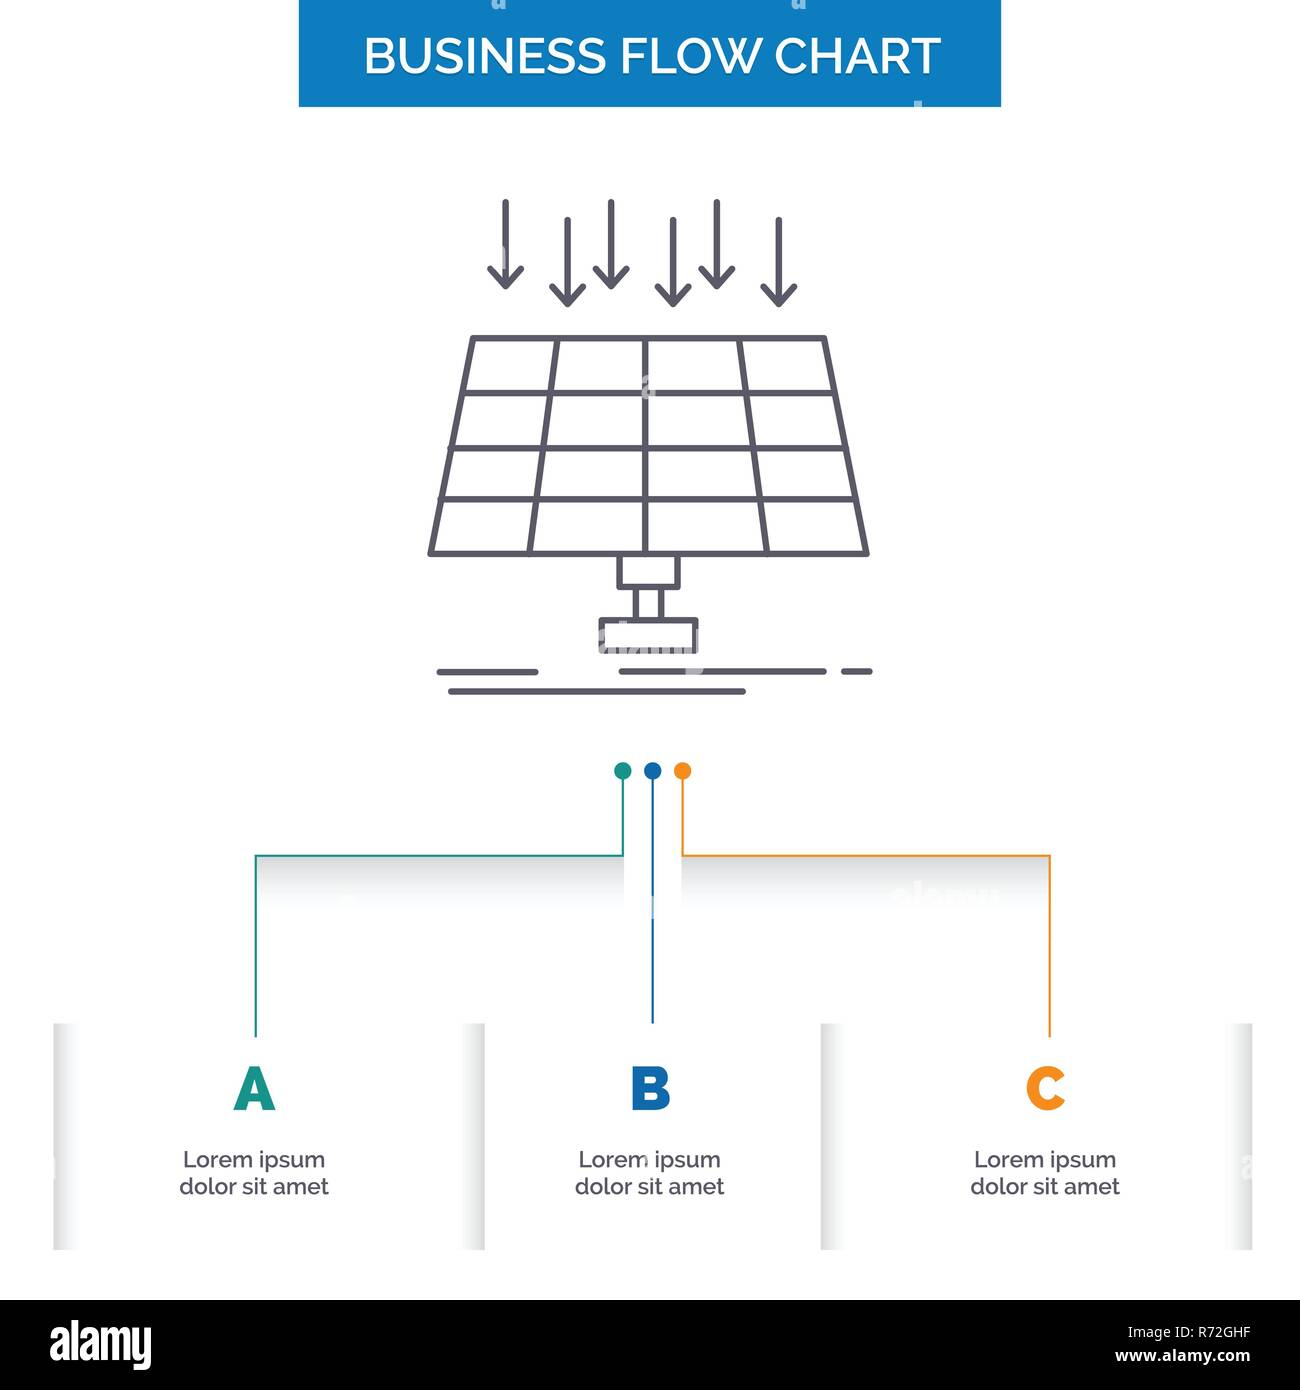 solar panel energy technology smart city business flow chart design with 3 steps line icon for presentation background template place for text R72GHF solar, panel, energy, technology, smart city business flow chart